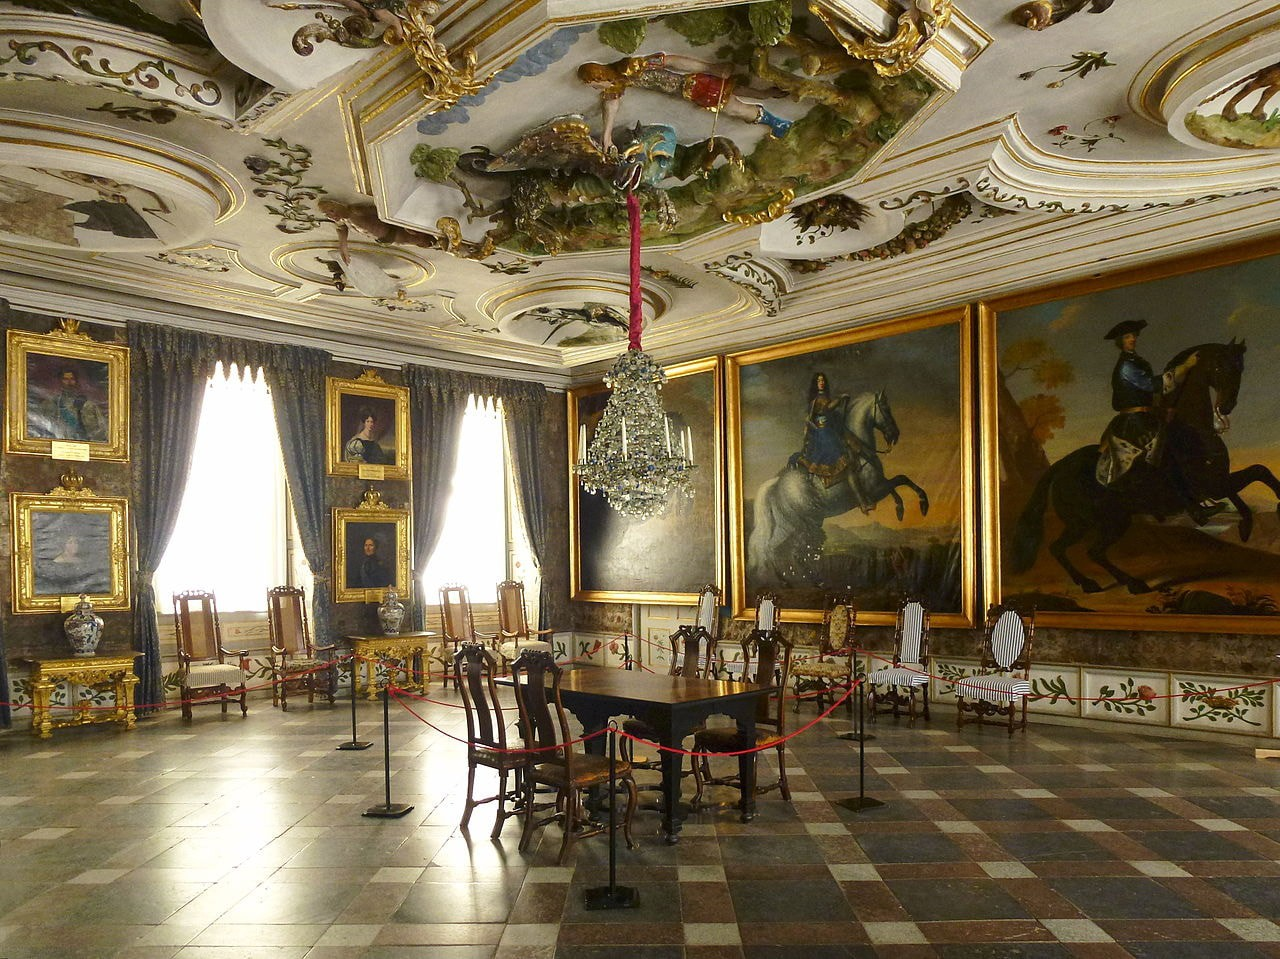 One of the many stunning rooms in Skokloster Castle   © Holger.Ellgaard / WikiCommons